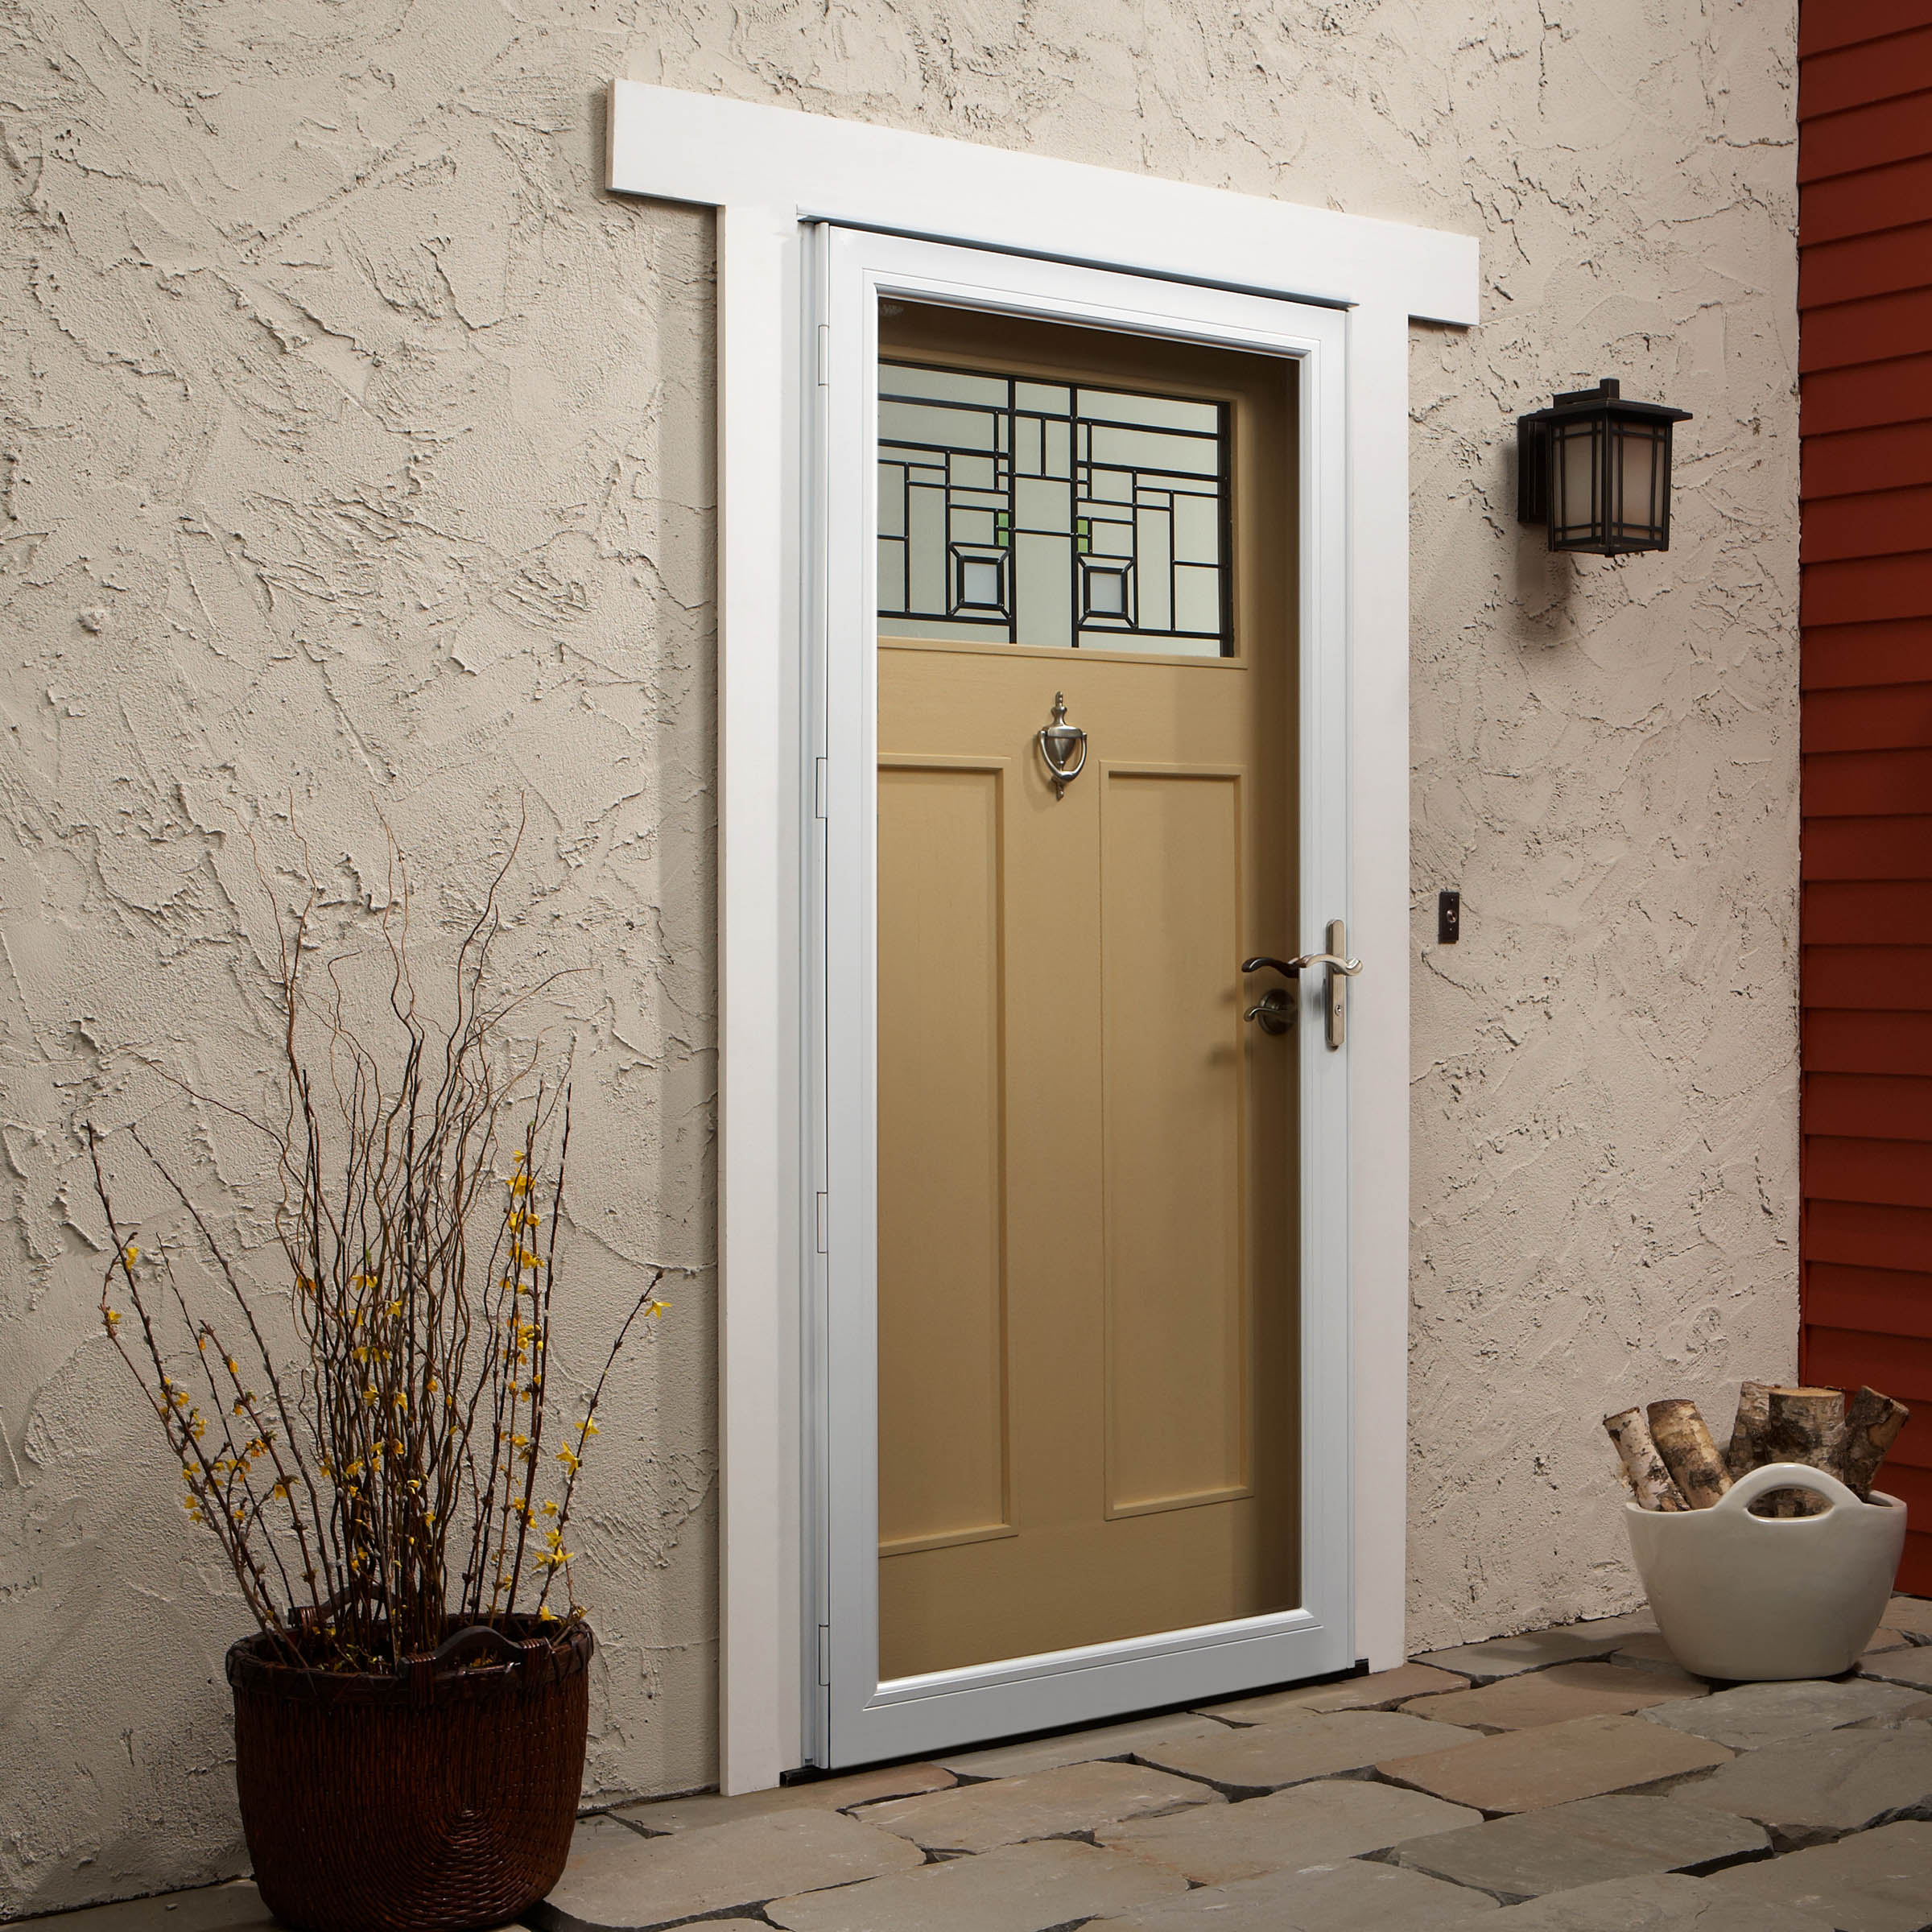 Charmant Storm Door With Retractable Screen. 4000 Series Fullview Laminated Safety  Glass